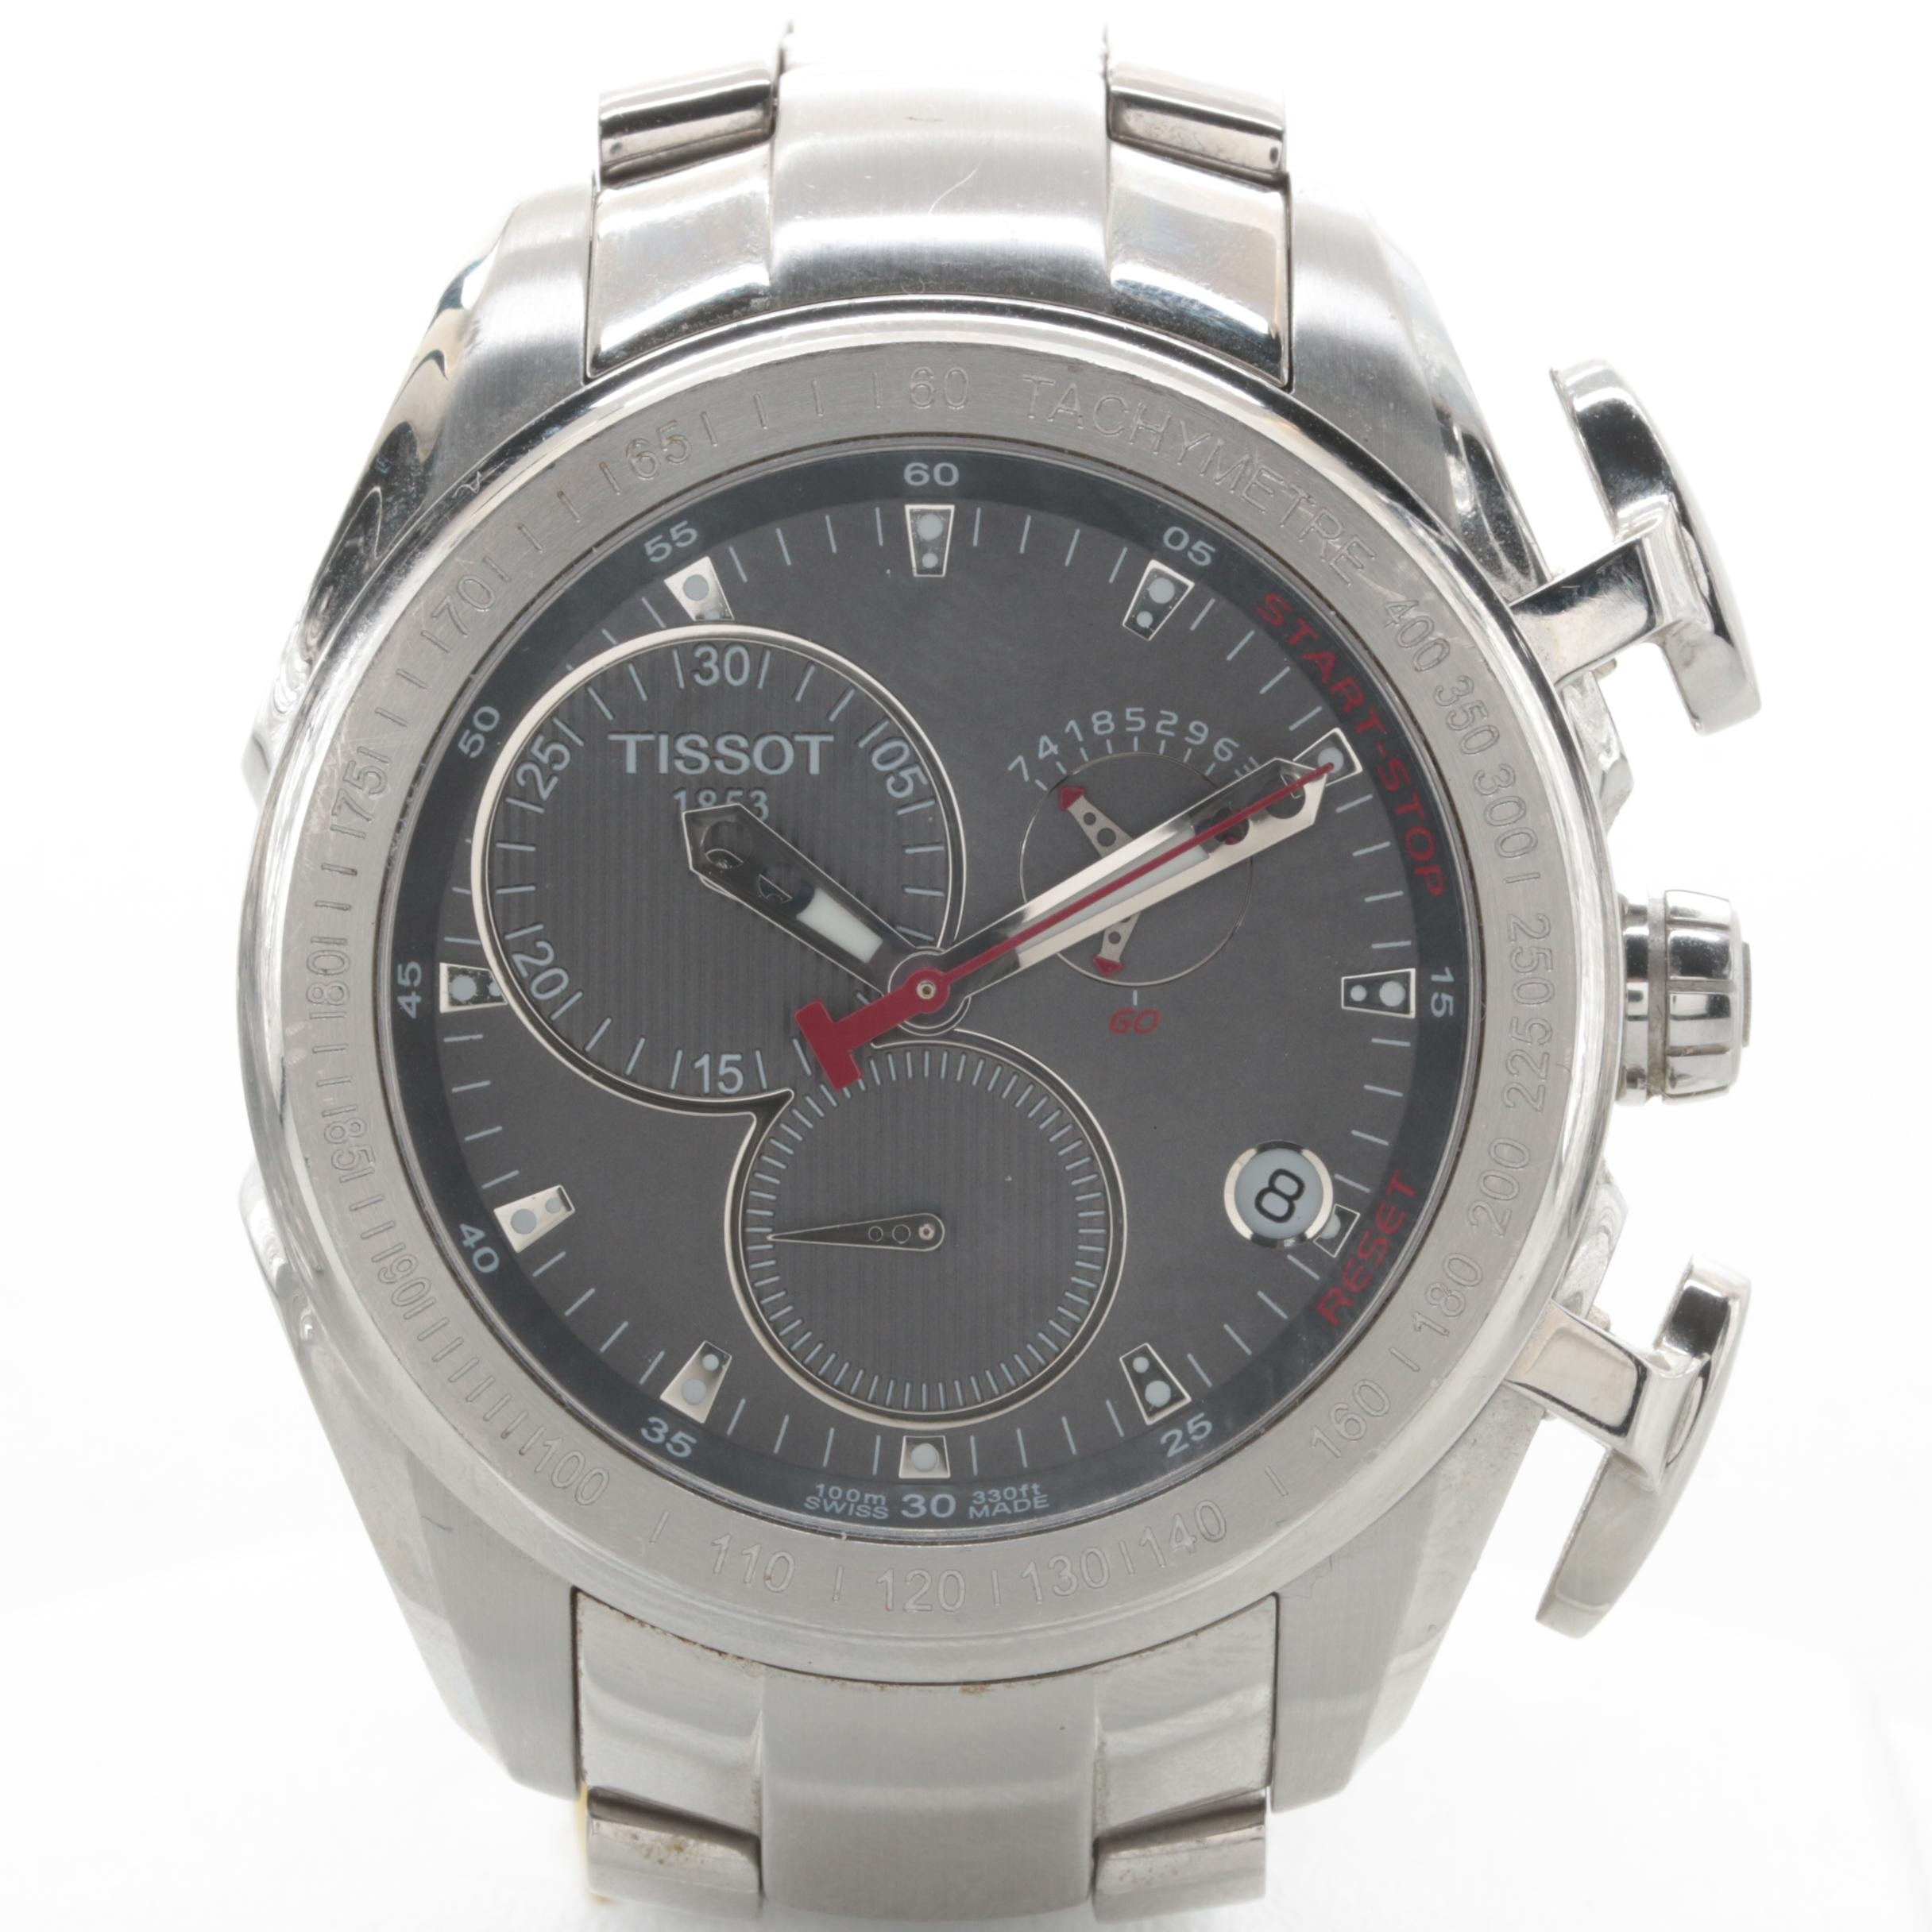 Tissot Stainless Steel Wristwatch with Tachymeter